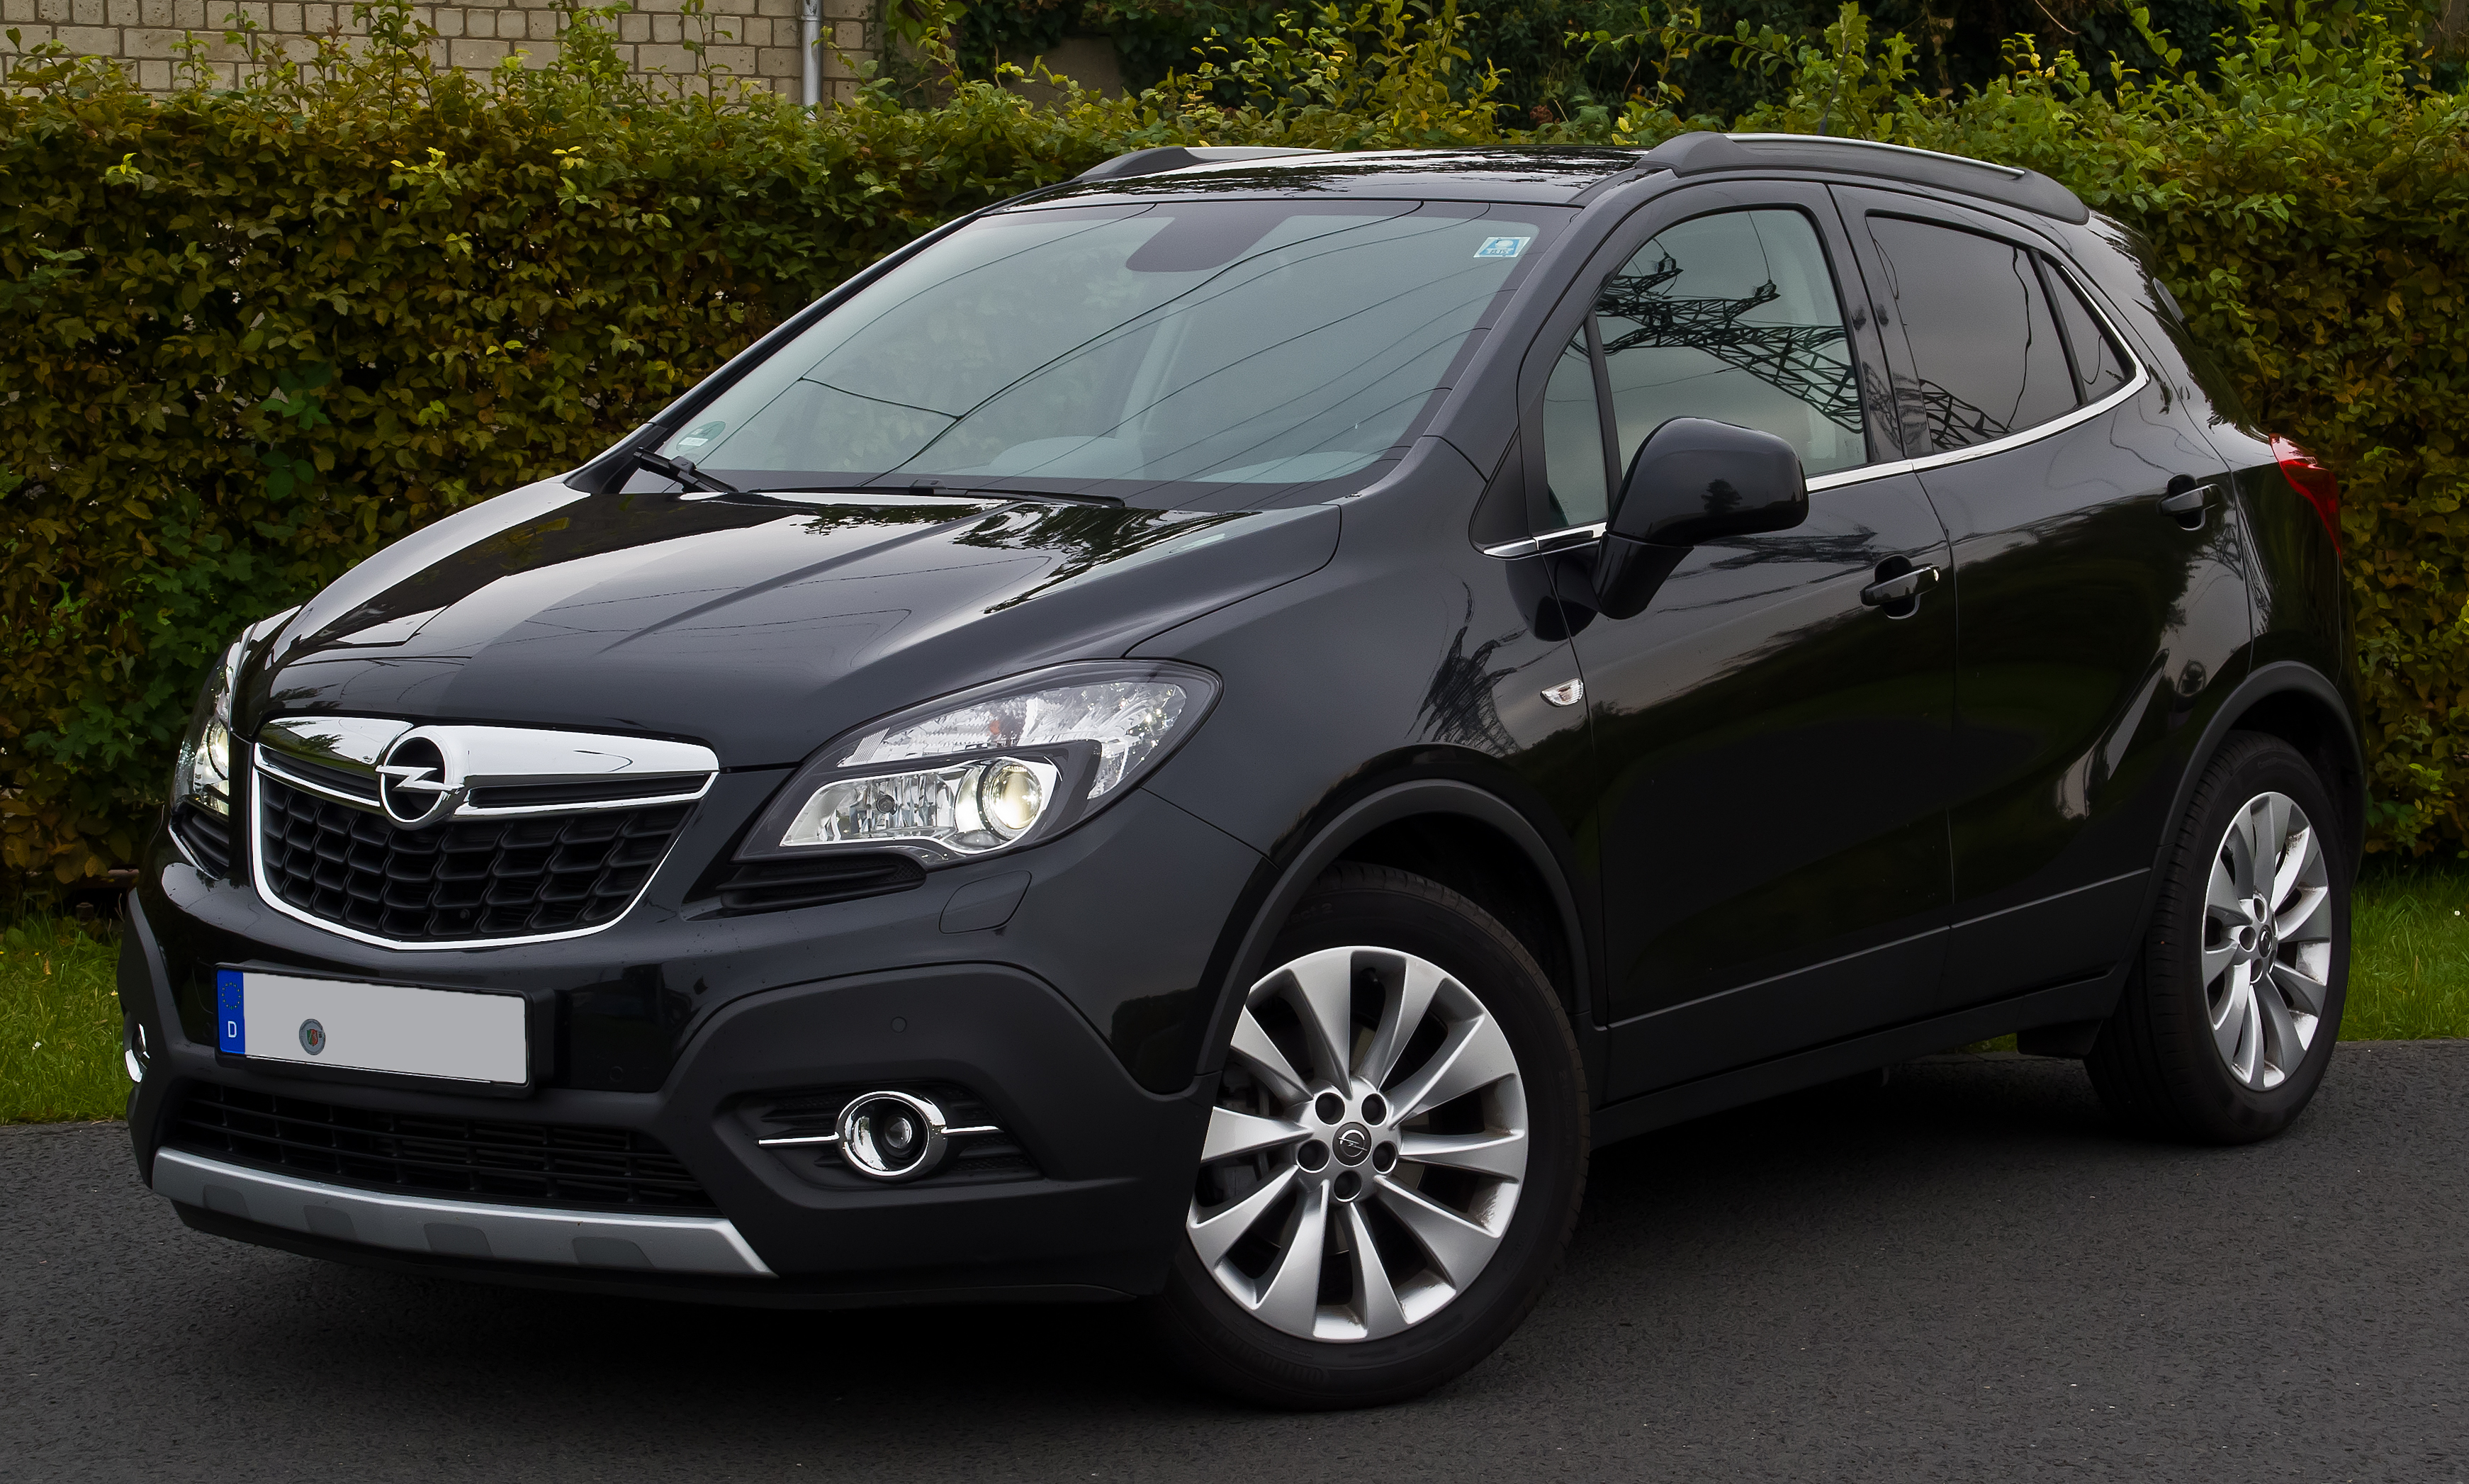 Opel Mokka 1.4 Turbo